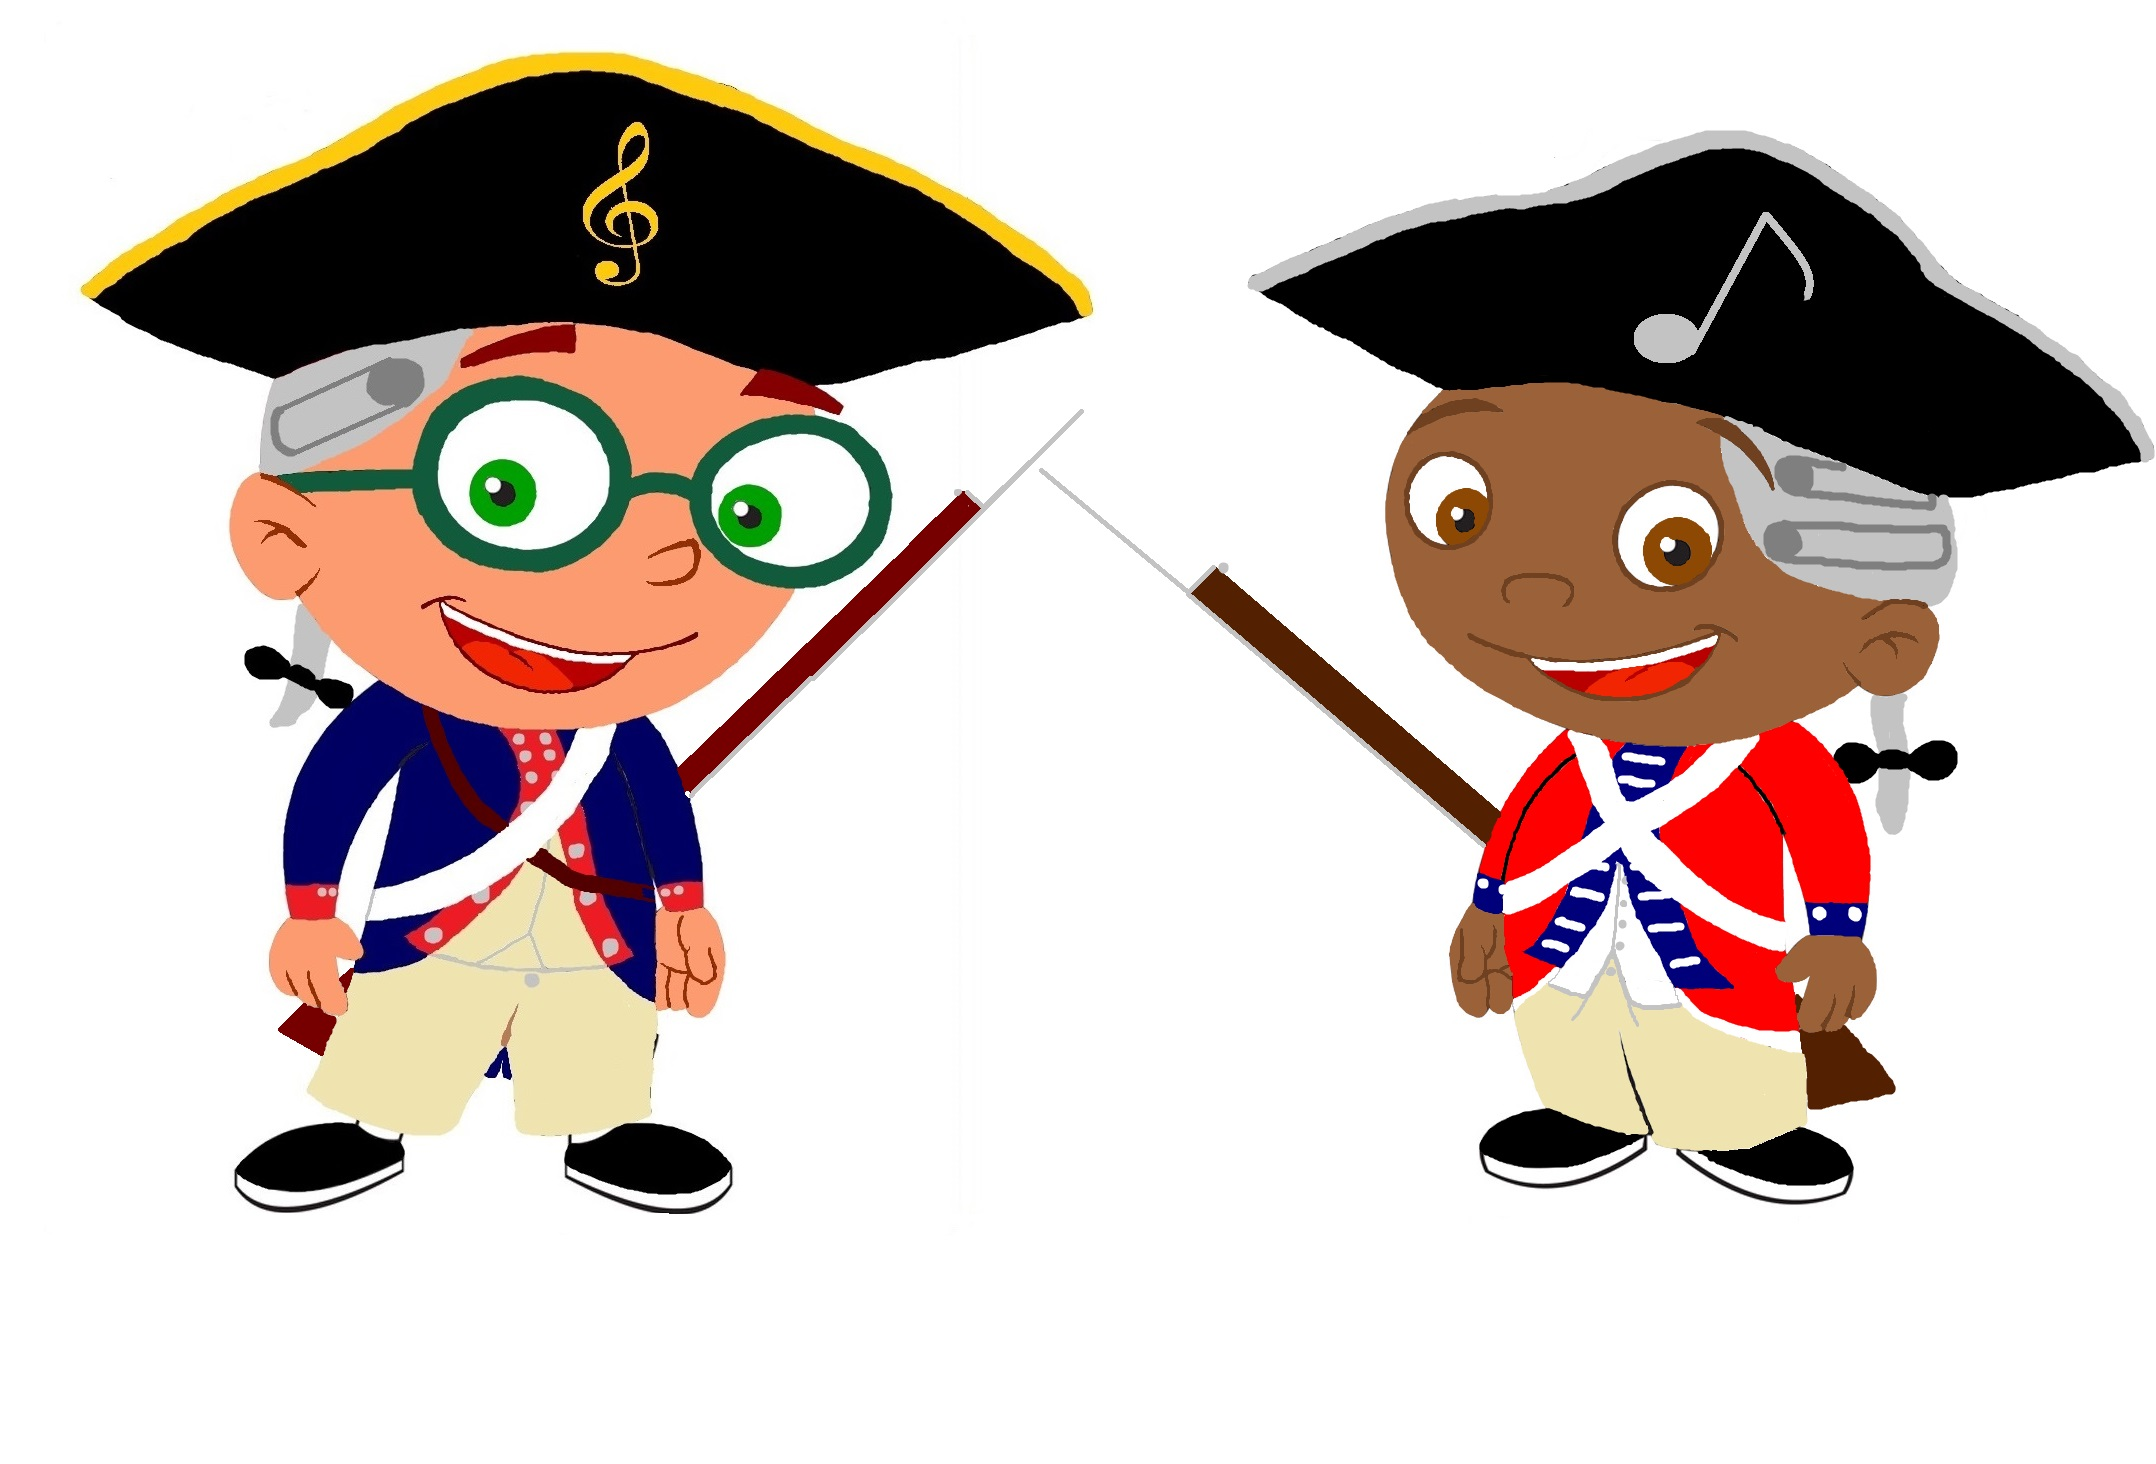 American revolution soldier clipart.